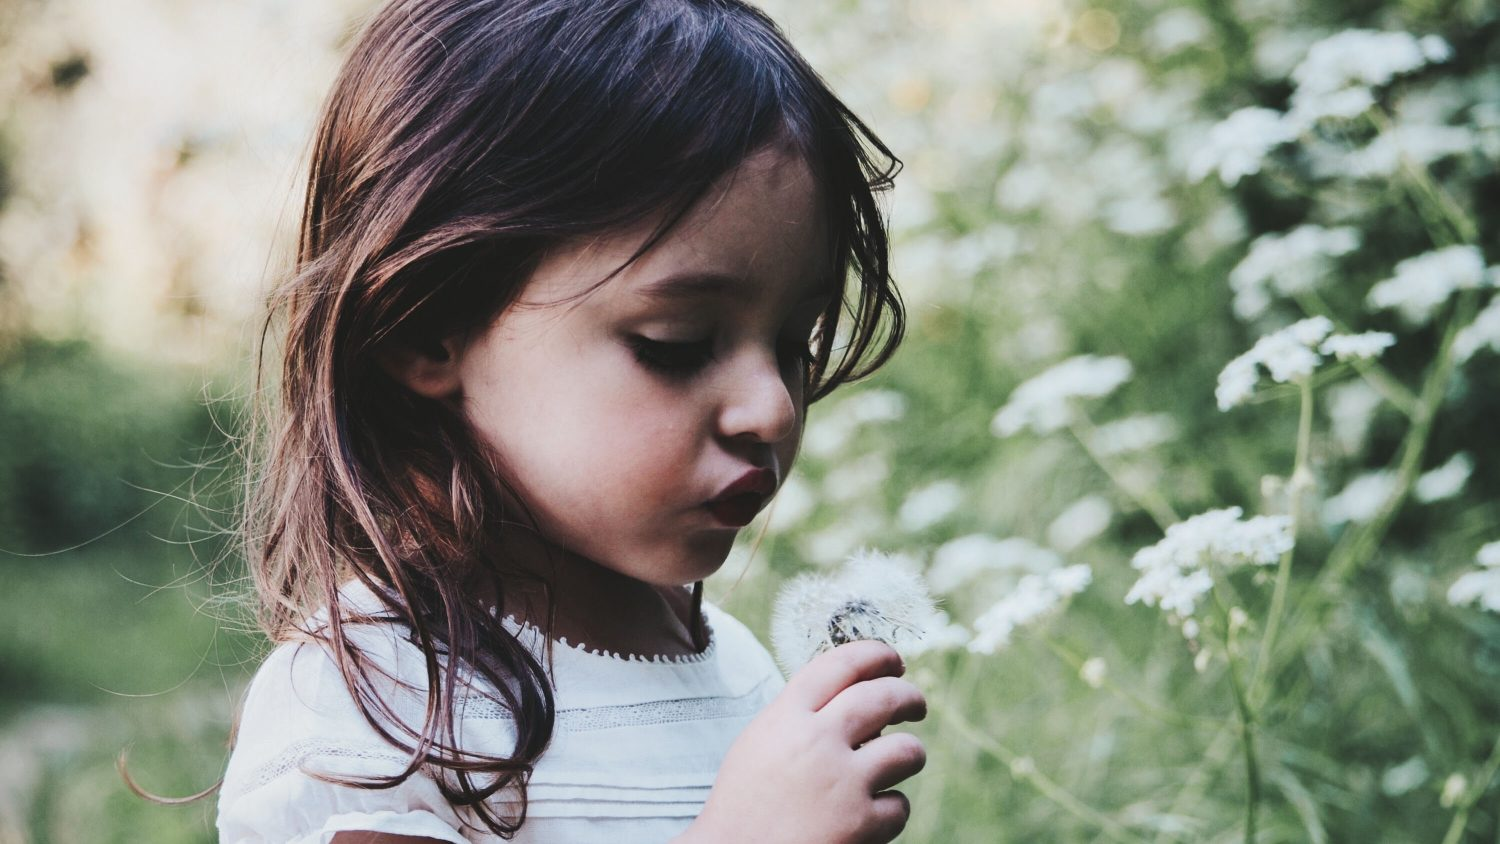 A child holding a dandelion